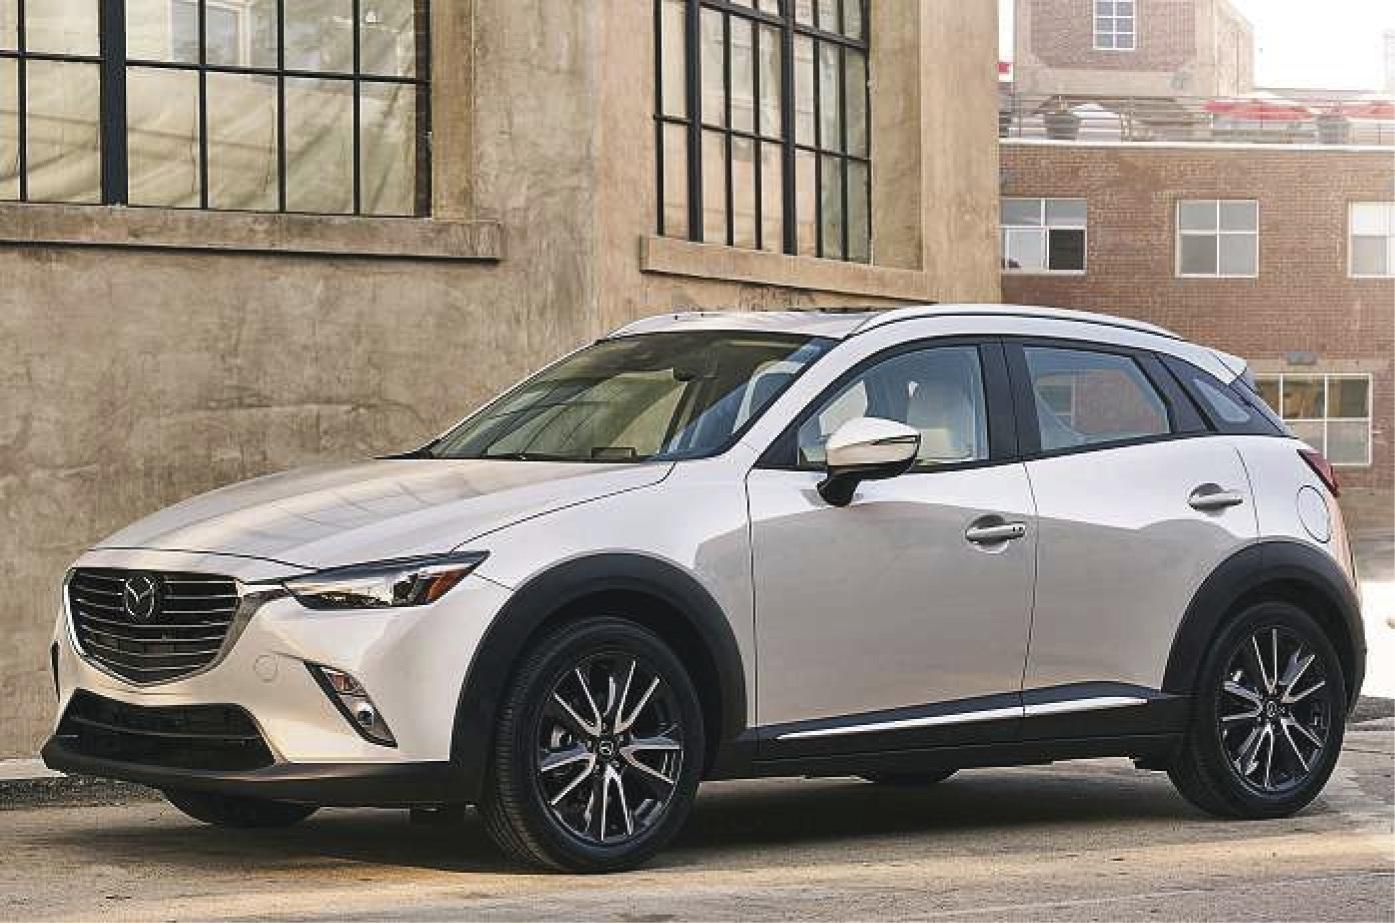 Mazda CX3 Small crossover gets interior, engine upgrades